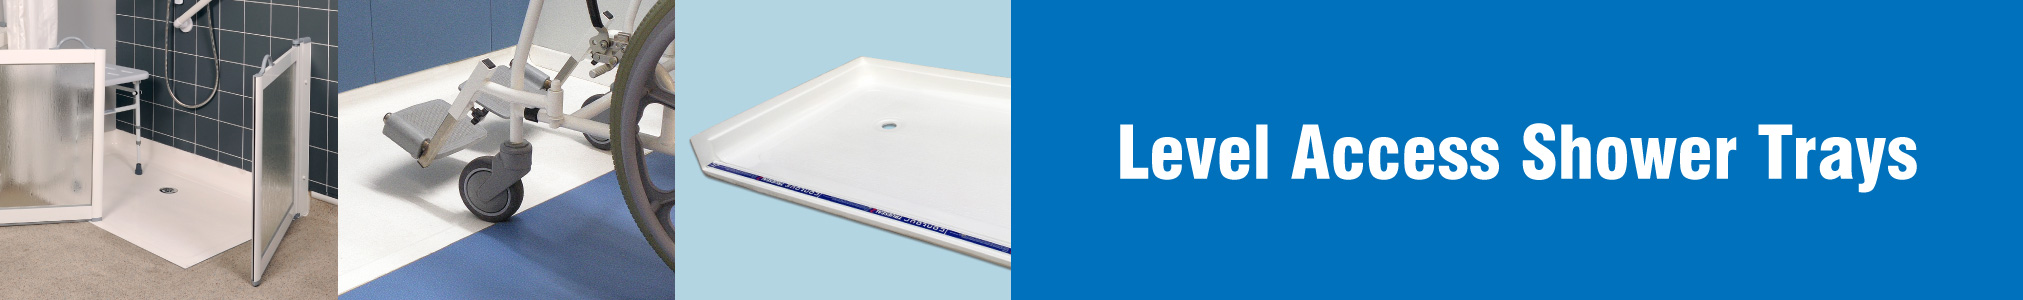 Level Access Shower Trays banner image